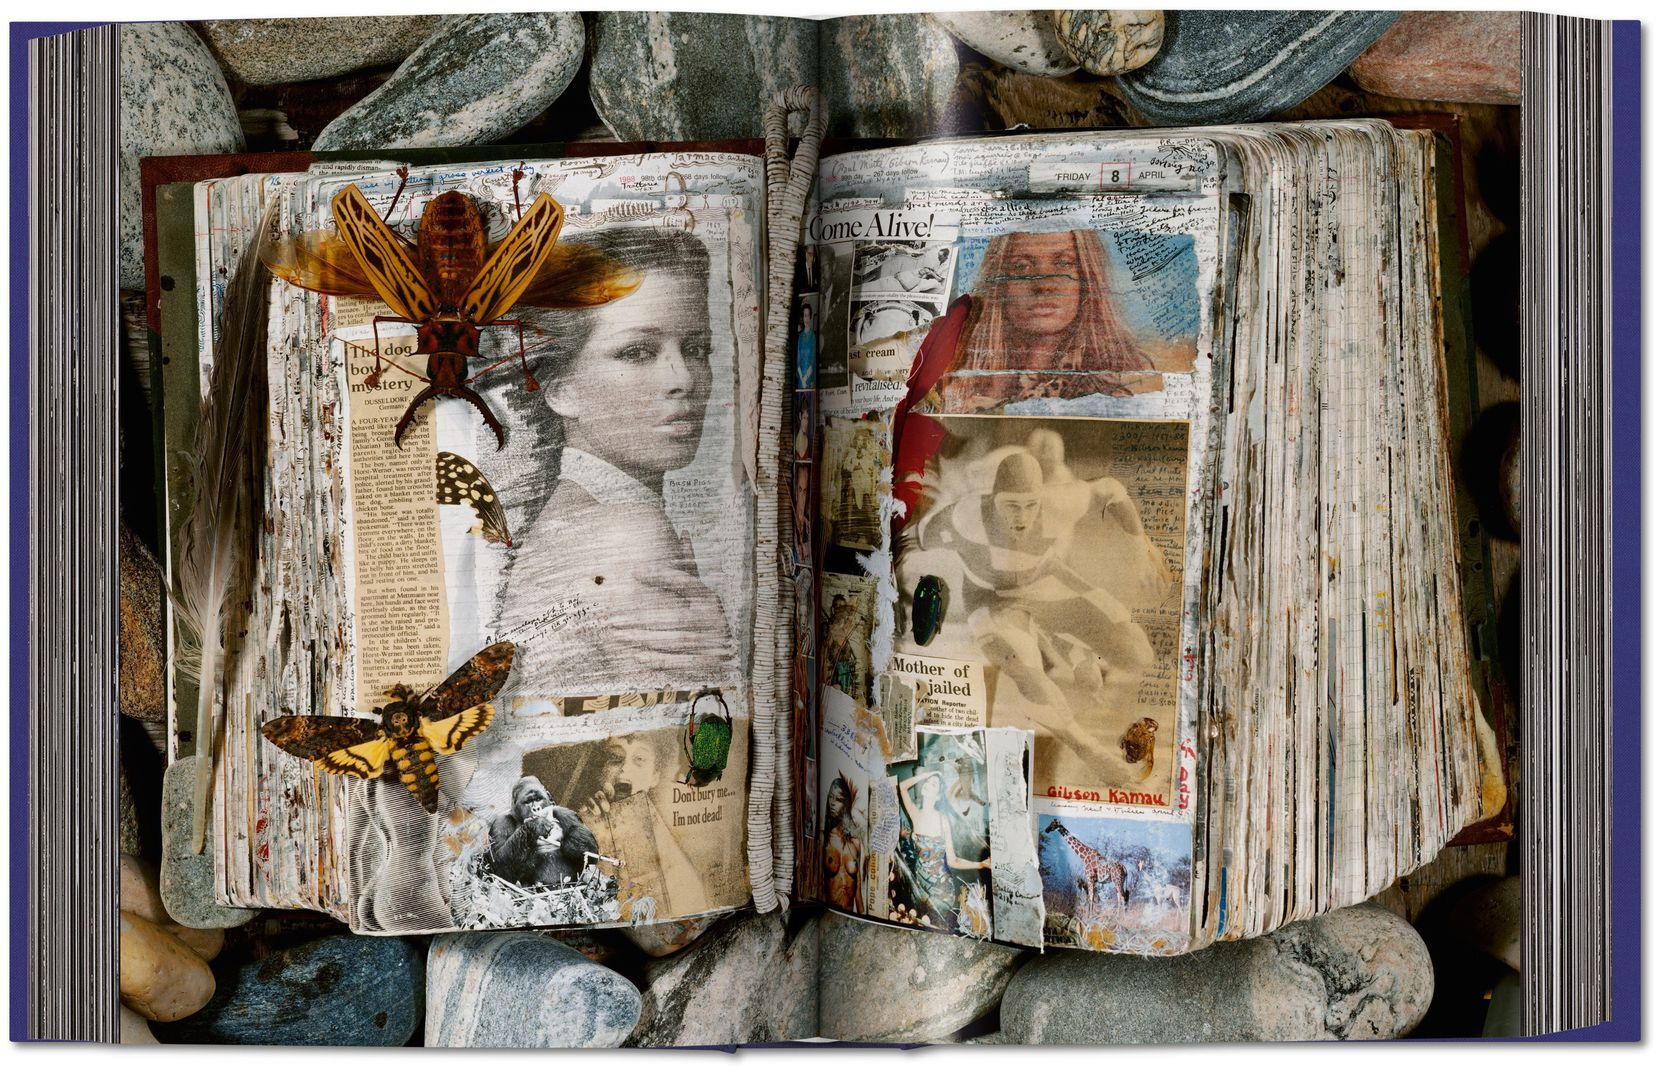 A spread from the book 'Peter Beard,' published by Taschen, showing his work.